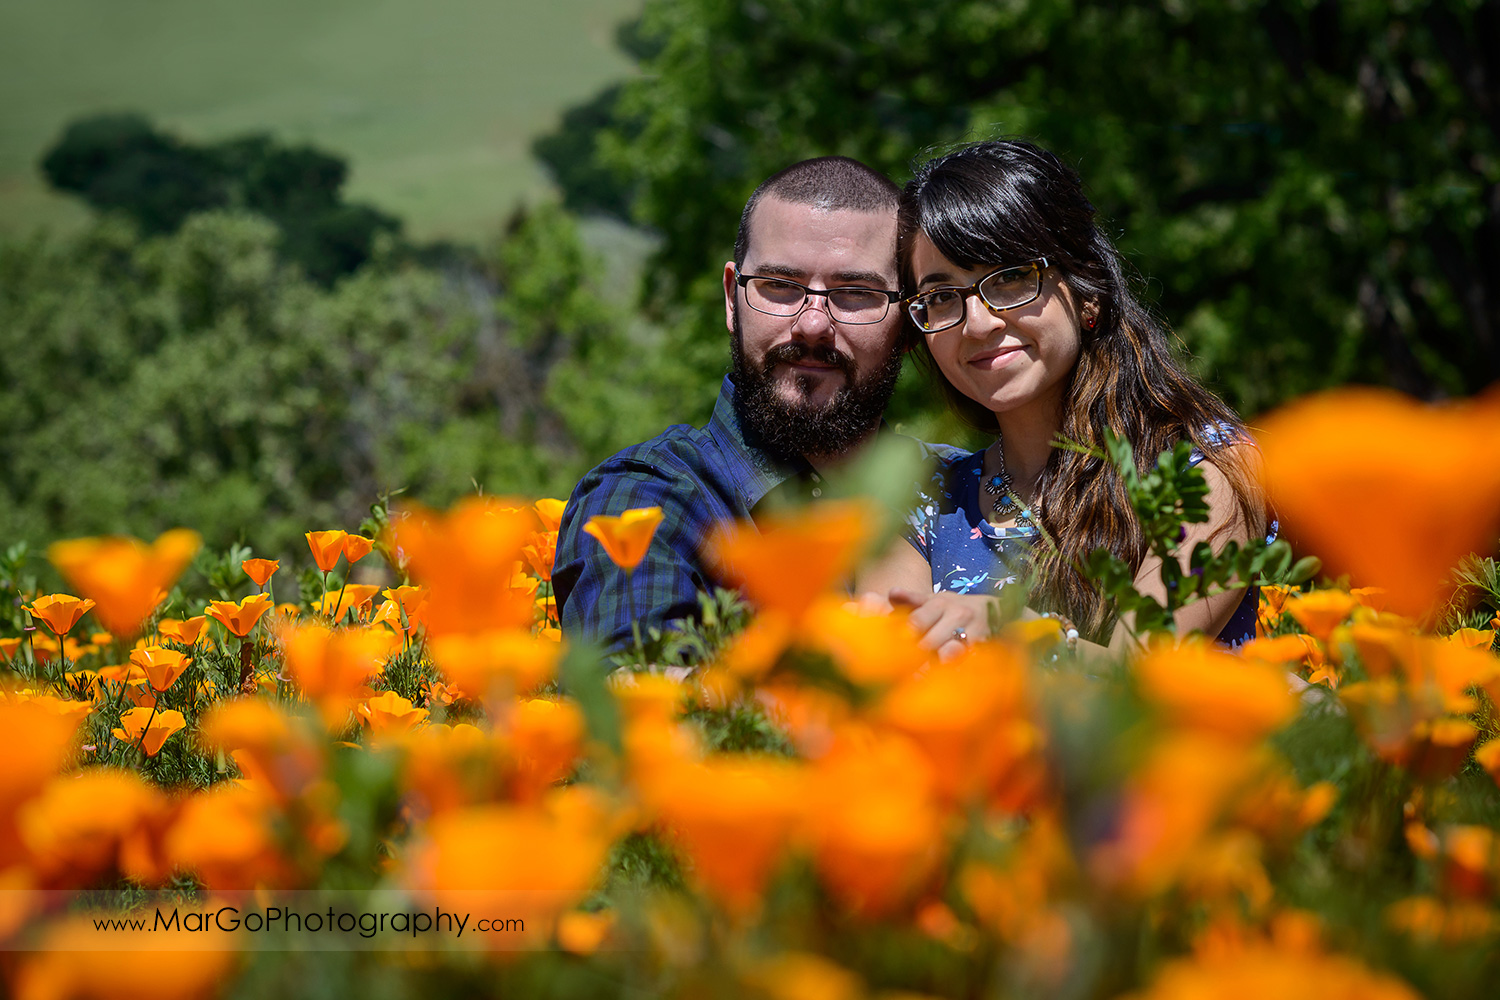 man in blue shirt and woman in blue dress sitting among orange poppies during engagement session at Sunol Regional Wilderness